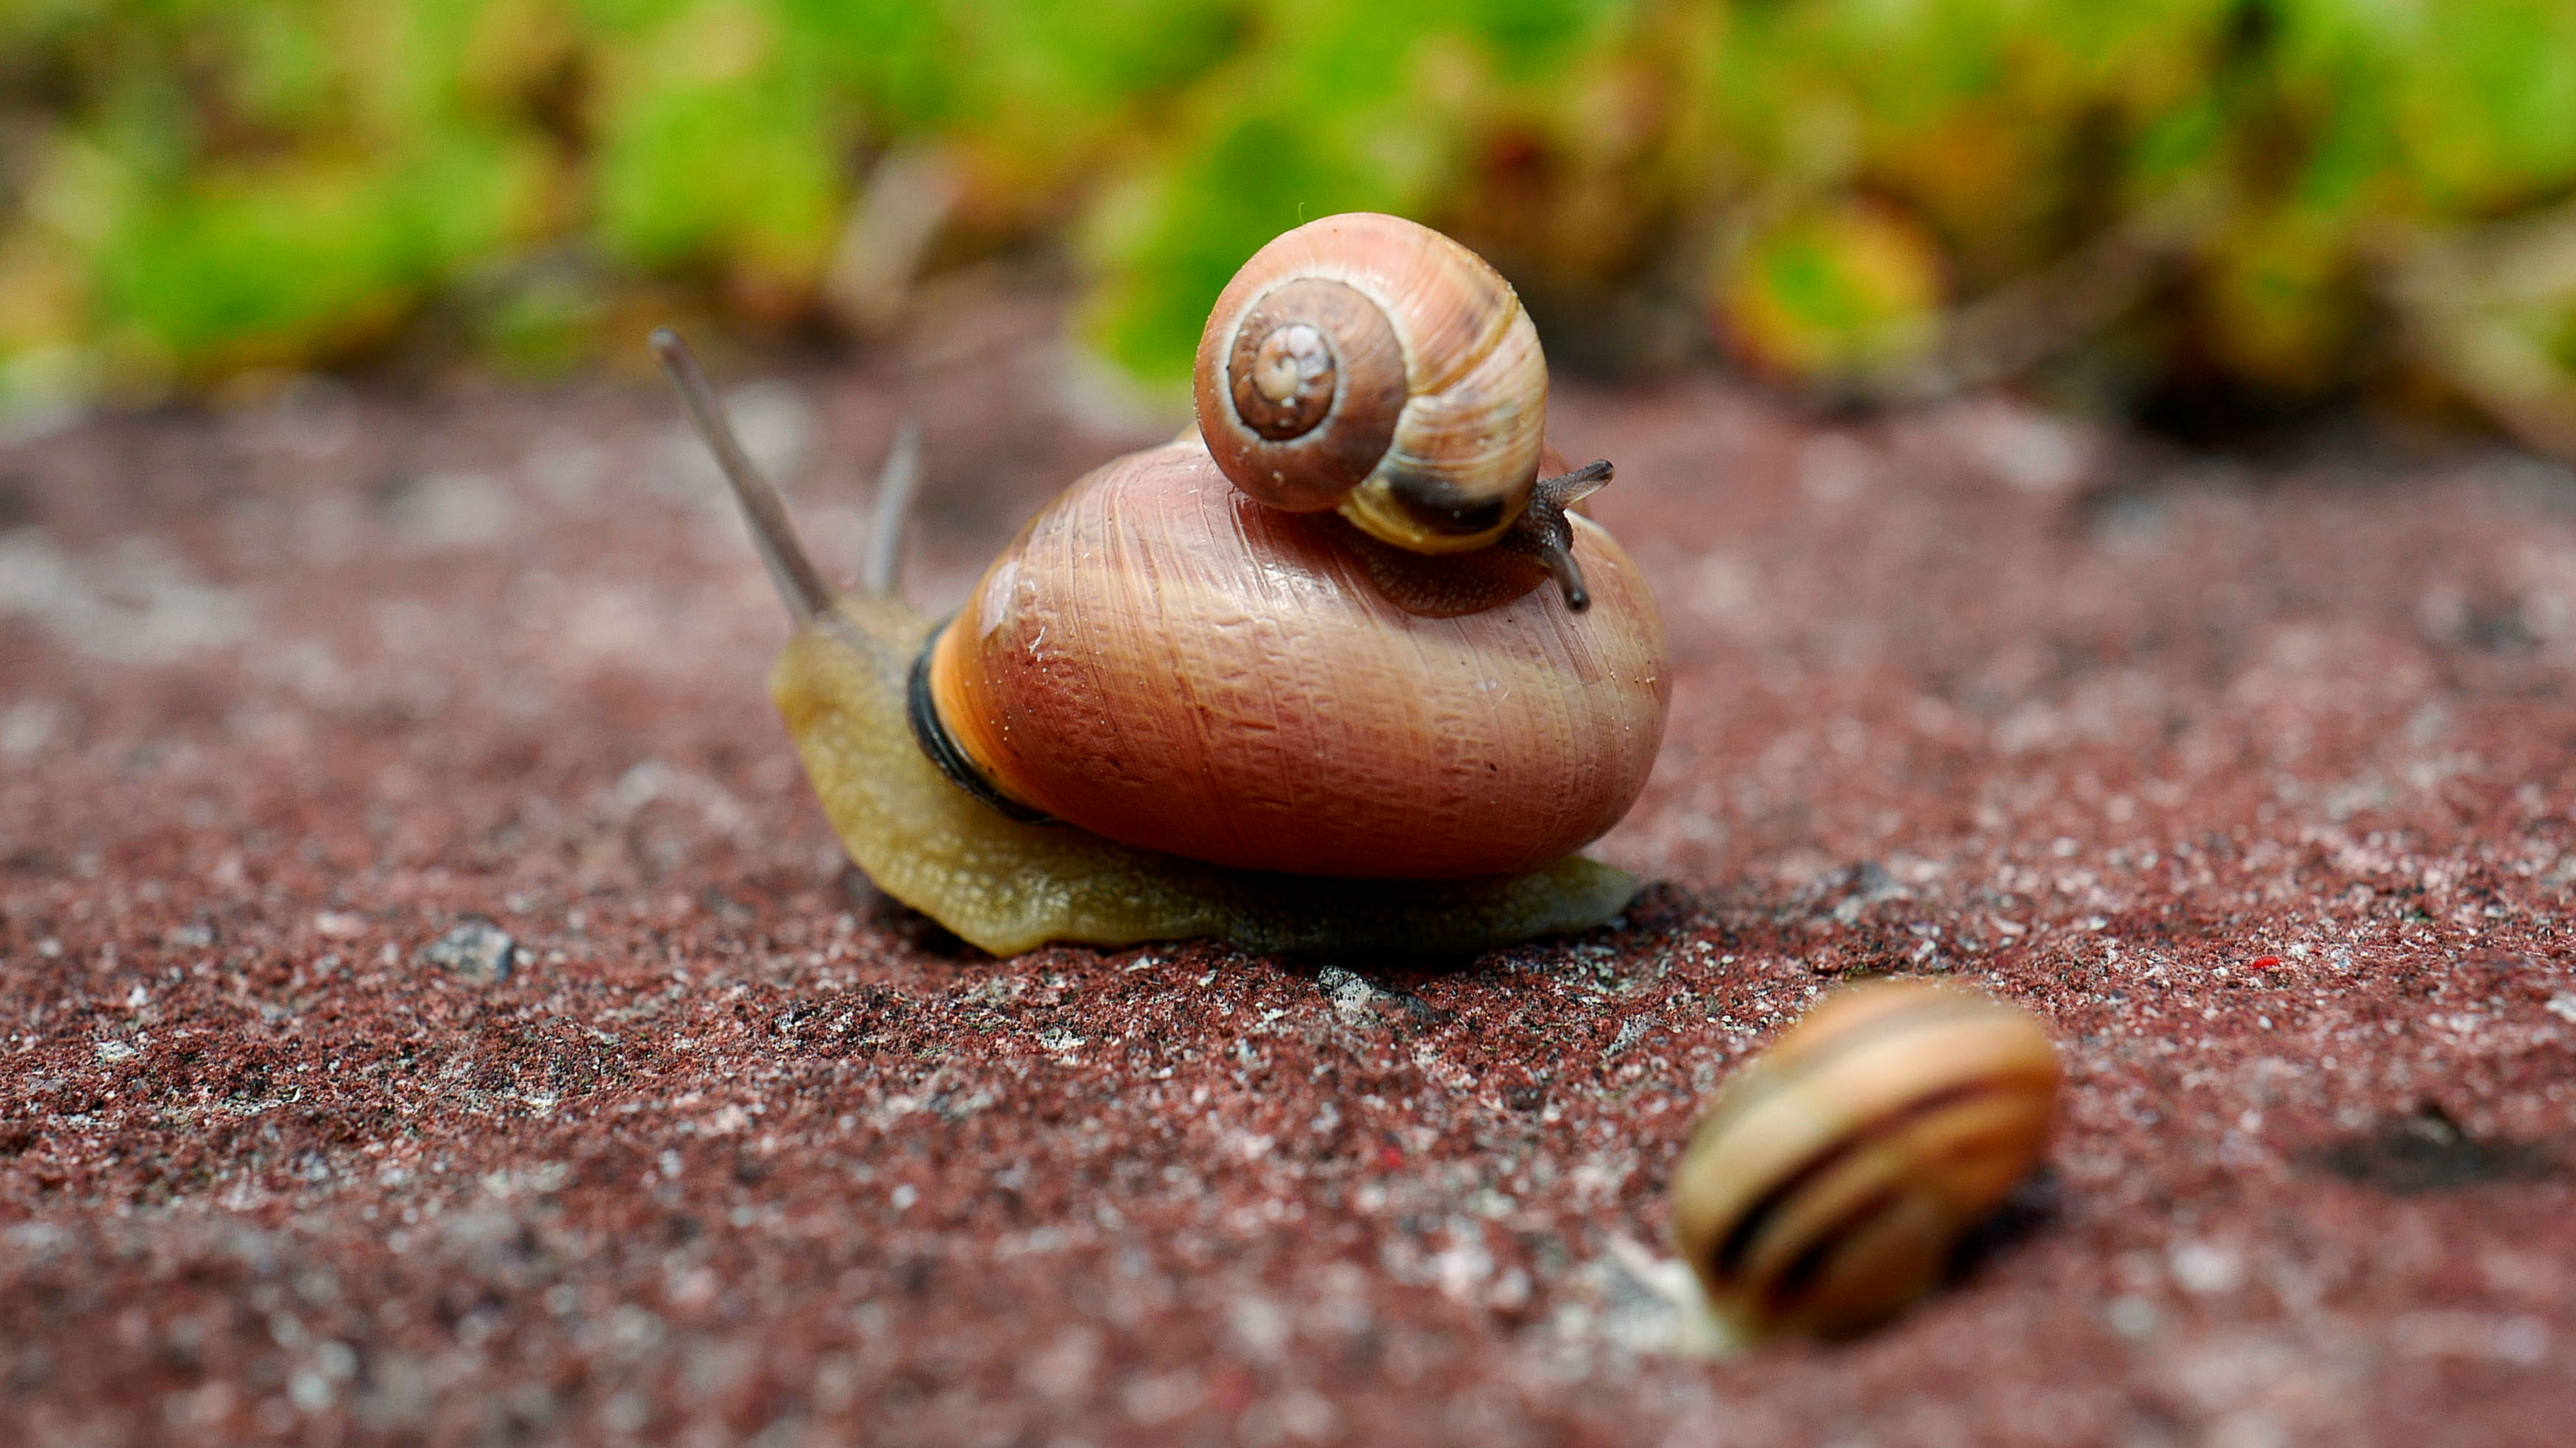 Snails are photographed in the park around Wolfsgarten (wolves' garden) castle of the Earl of Hesse in Langen near Frankfurt, Germany, May 15, 2016. Wolfsgarten castle is open to the public only during two weekends in spring and autumn